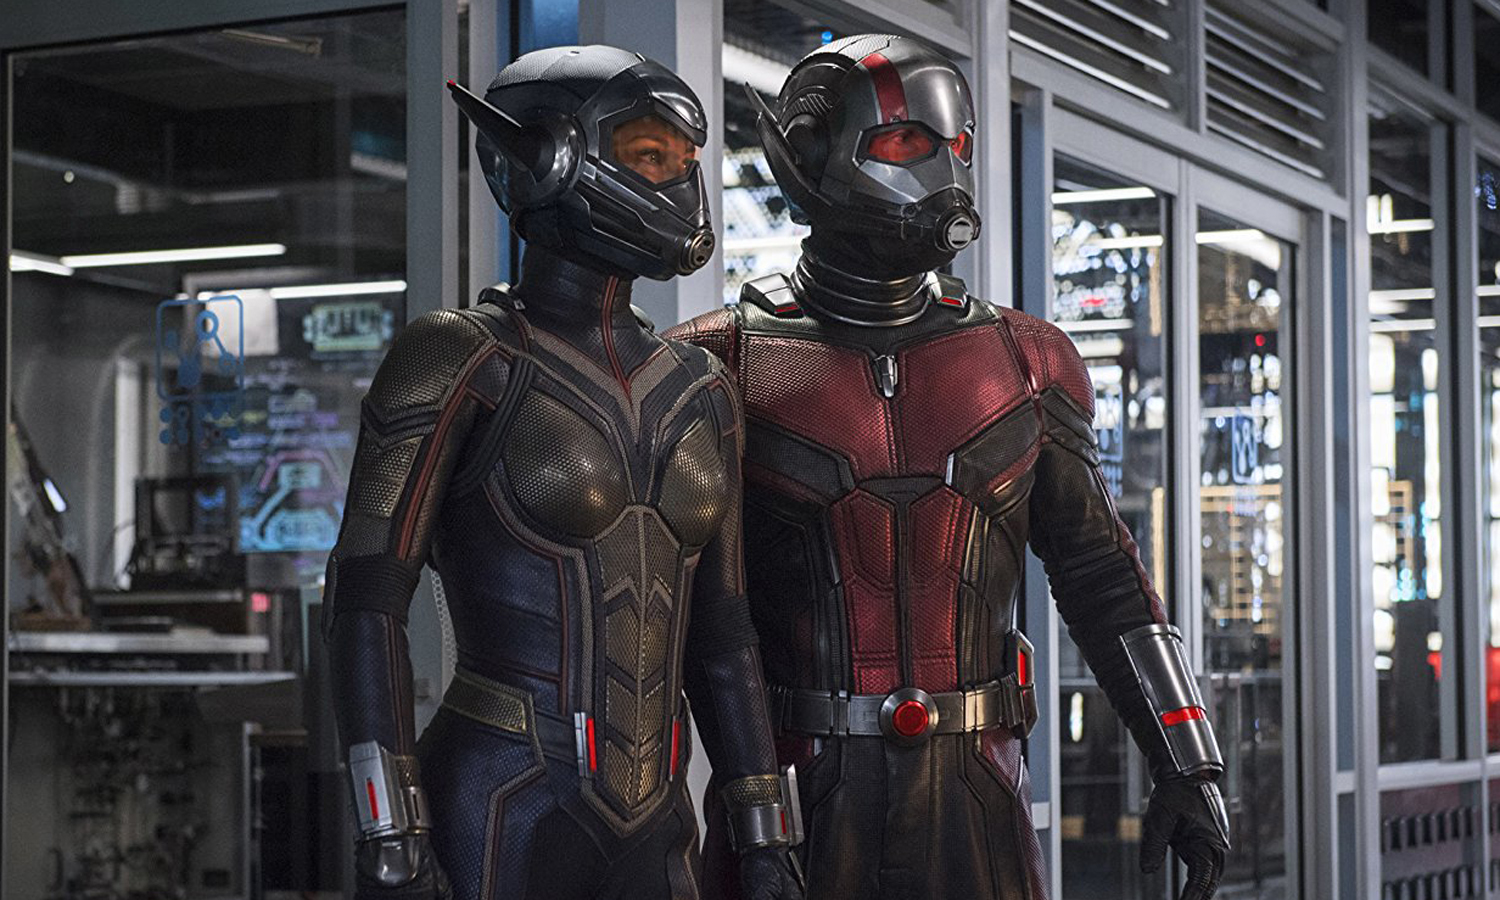 Marvel's Ant-Man and The Wasp trailer has landed